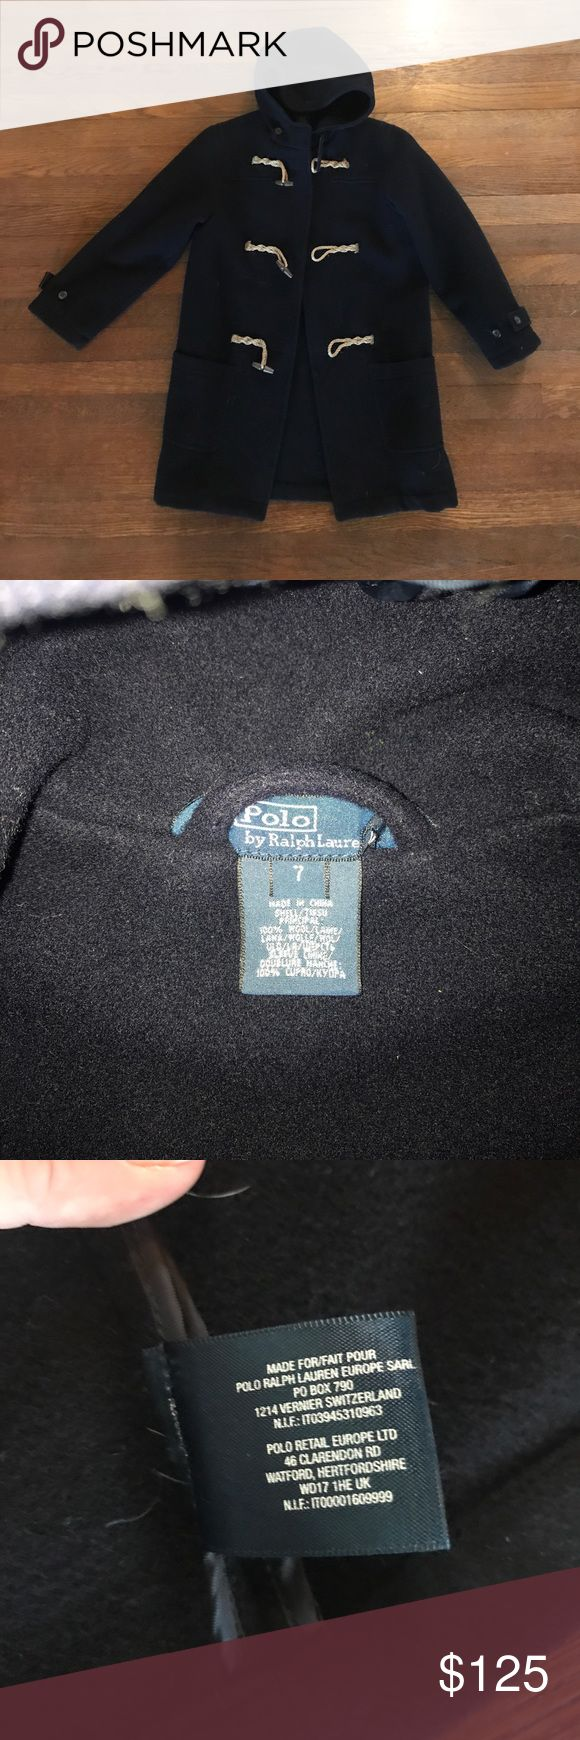 Polo Ralph Lauren boys blue wool toggle coat 7 In great condition worn a handful of times. Similar coats On their website right now retail 250. Perfect for the holidays. Dark navy blue and unlined. Last  photo is stock to give an idea of the overall look but is not the actual coat- rest of photos are actual coat. Size boys 7. Polo by Ralph Lauren Jackets & Coats Pea Coats